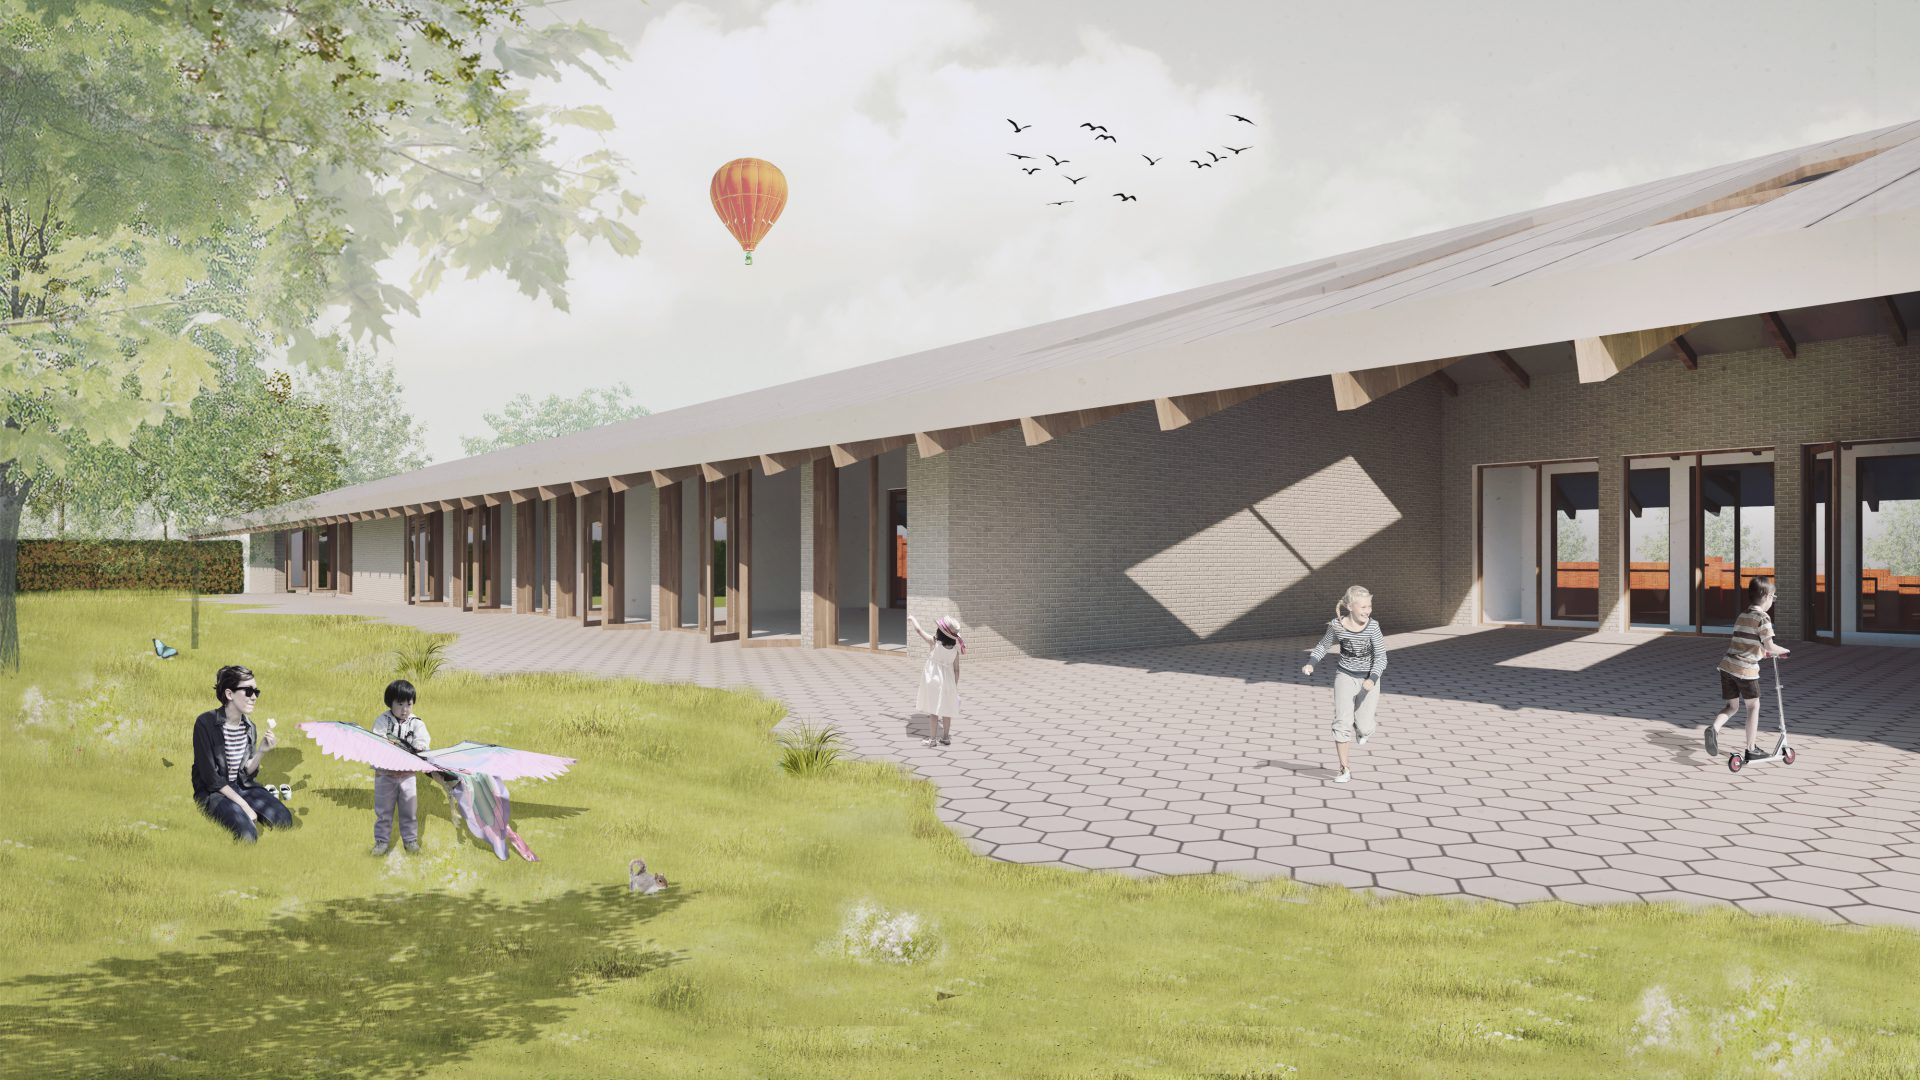 CroonenBuro5 en White Door Architects winnen architectenselectie Freinetschool De Kolibrie